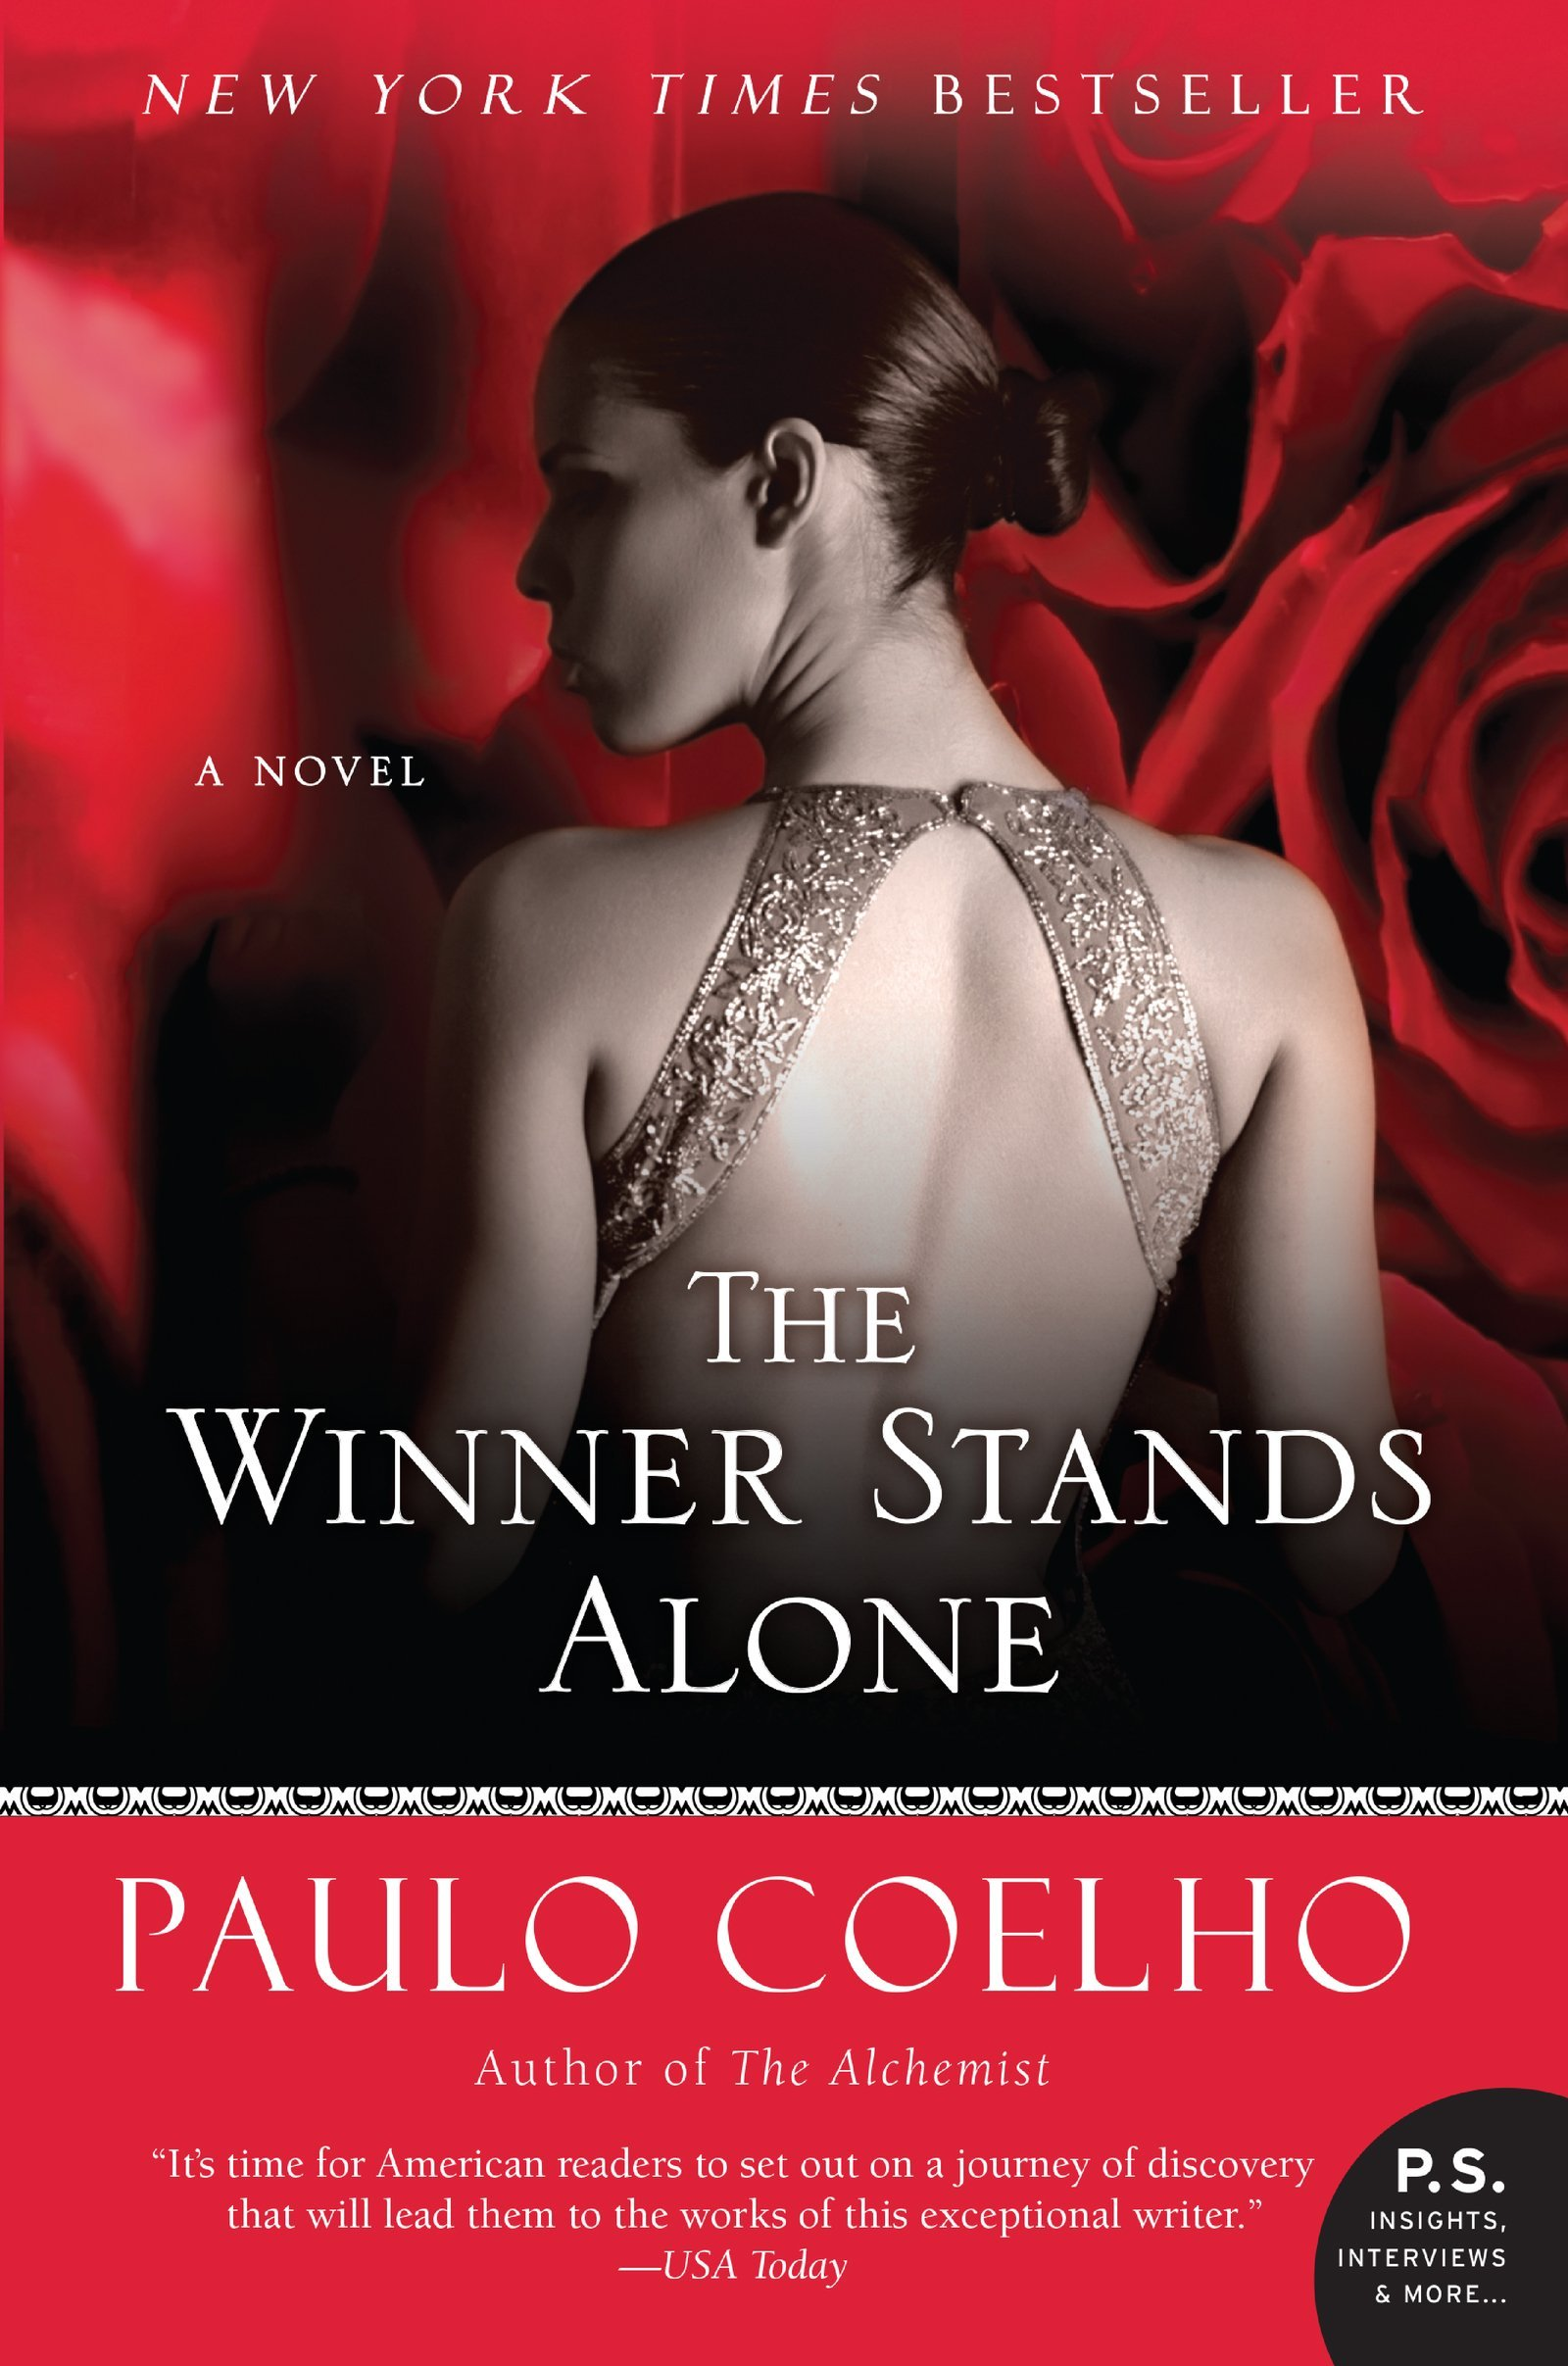 amazon com the winner stands alone a novel p s 9780061750526 amazon com the winner stands alone a novel p s 9780061750526 paulo coelho books